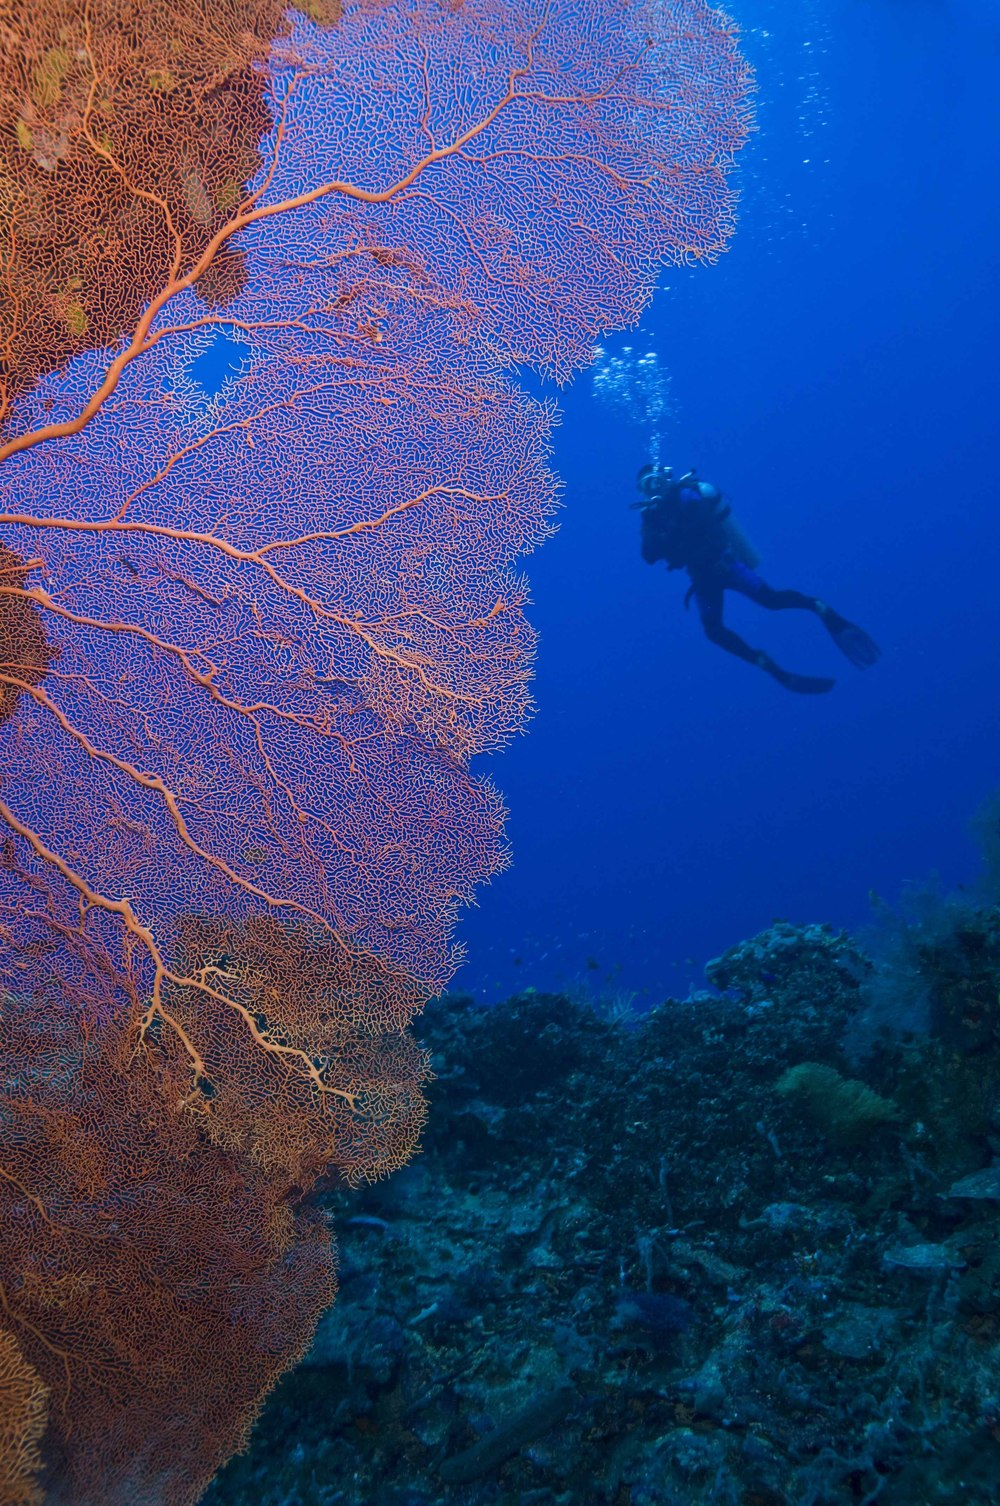 Scuba diver poses behind giant sea fan. Tubbataha's dramatic atolls are coated by all manner of marine life, including multihued hard and soft corals, sponges and sea fans. Though many are relatively fast-growing, some coral species take centuries to grow.  (Photo by Toppx2)